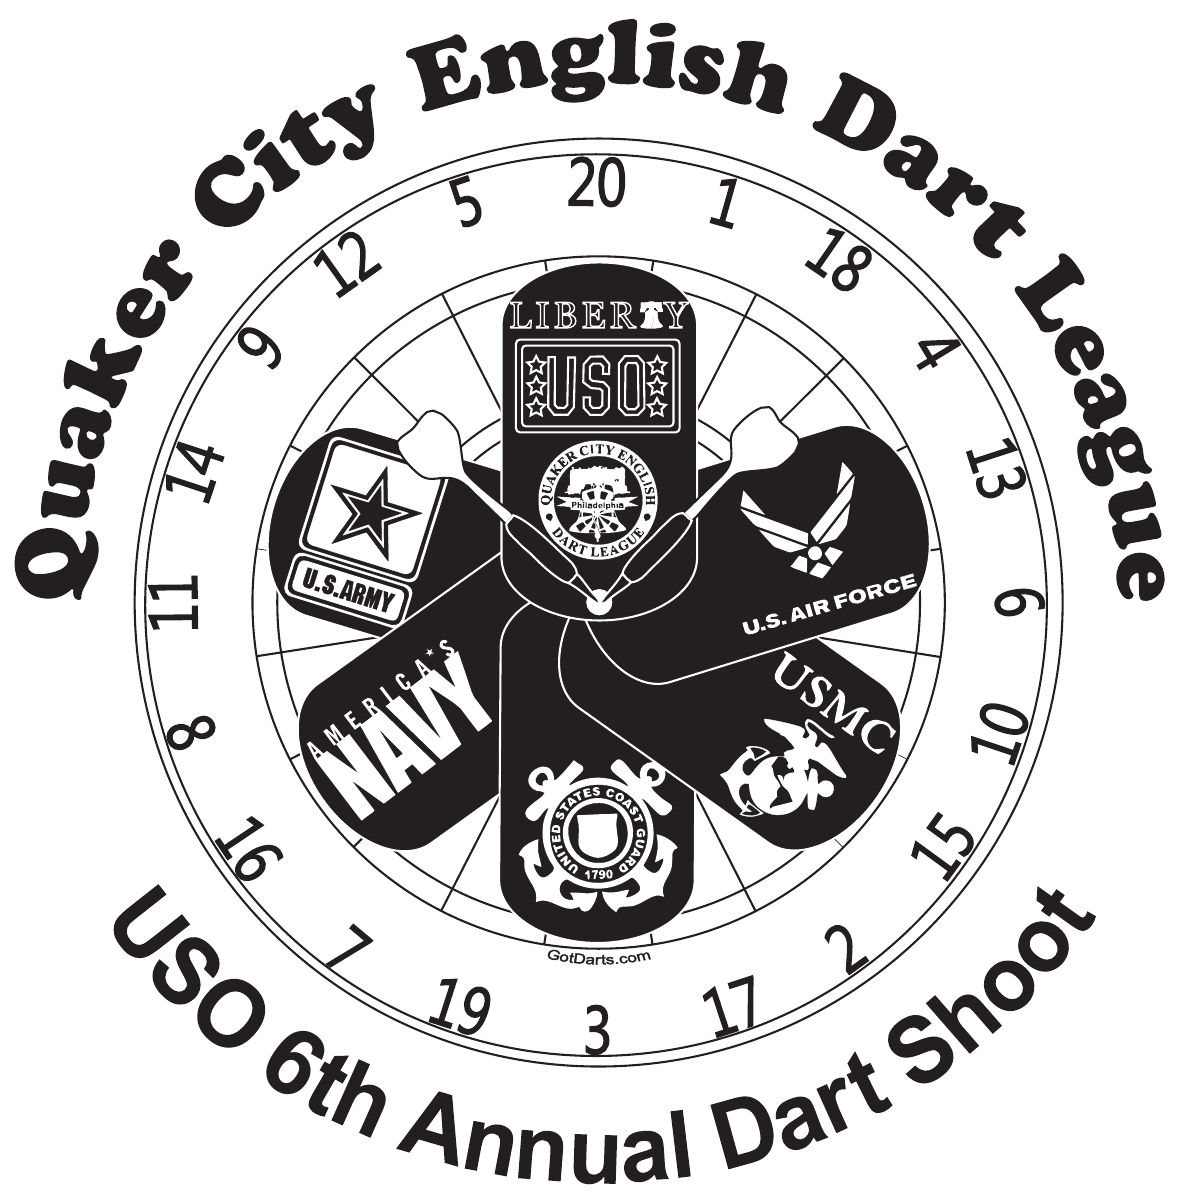 Quaker City English Dart League USO FB 34976 35025 36939